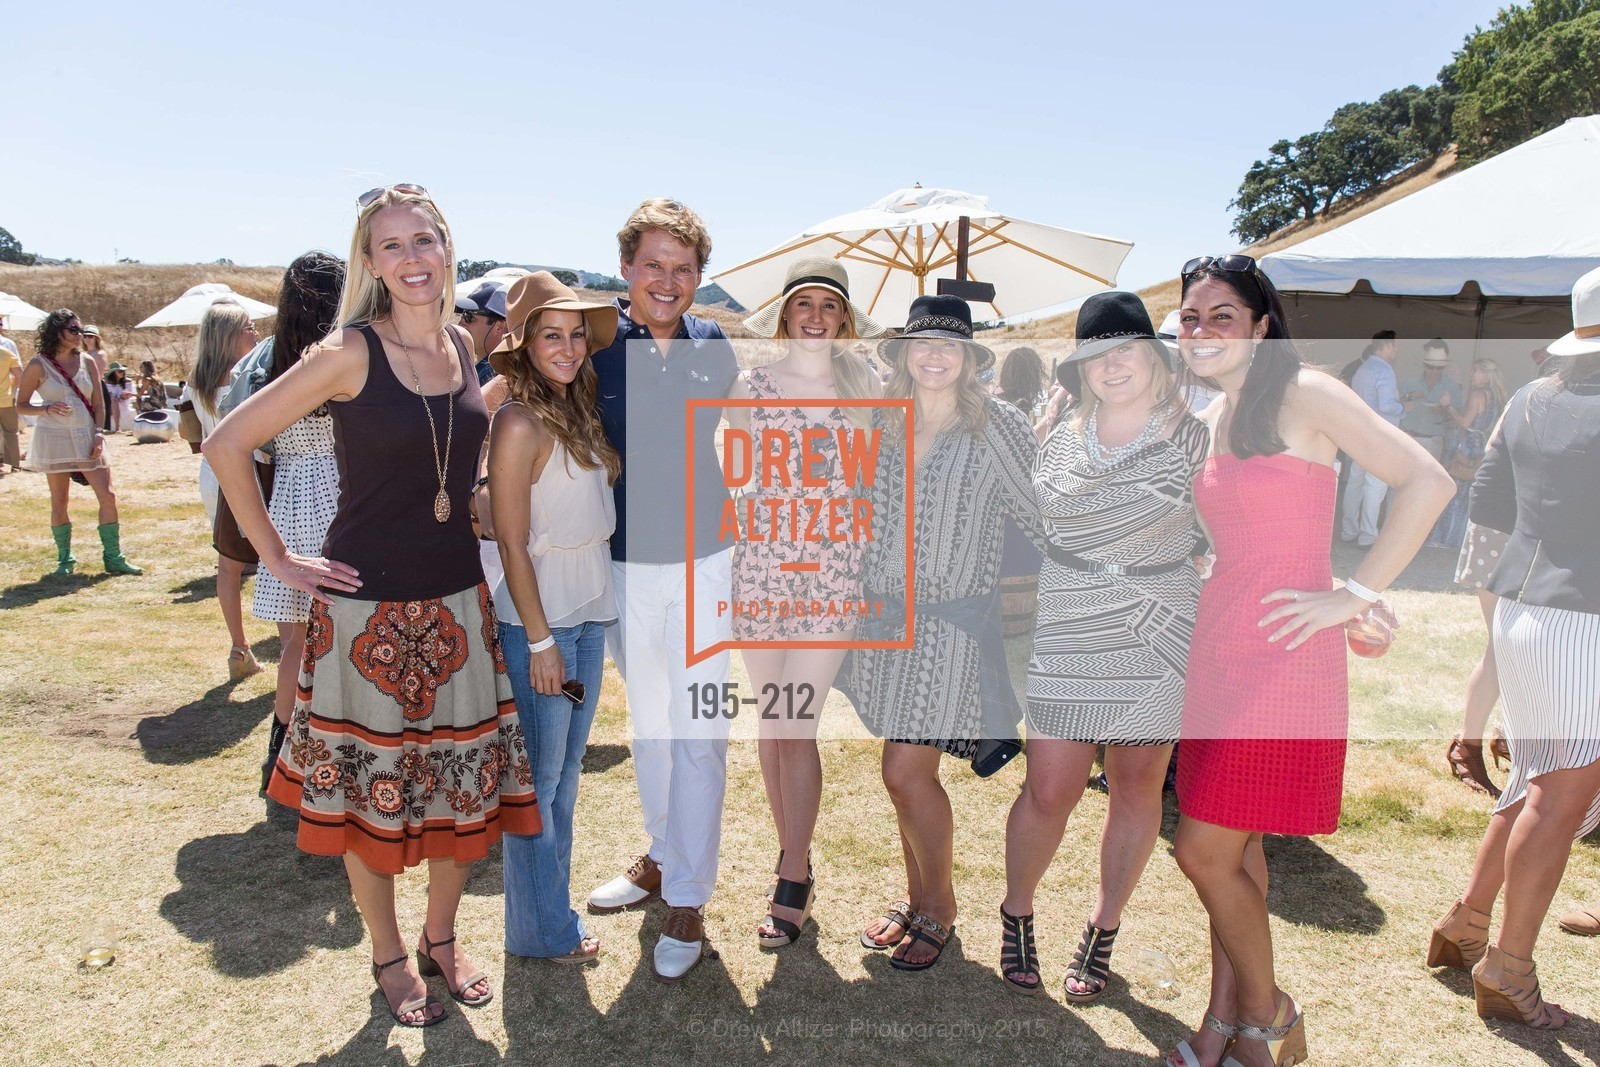 Jonathan Tower, Corrine Stoll, Mardi Tangeman, Elise Duncan, Stick & Ball Oyster Cup Polo Tournament, Cerro Pampa Polo Club, July 25th, 2015,Drew Altizer, Drew Altizer Photography, full-service agency, private events, San Francisco photographer, photographer california